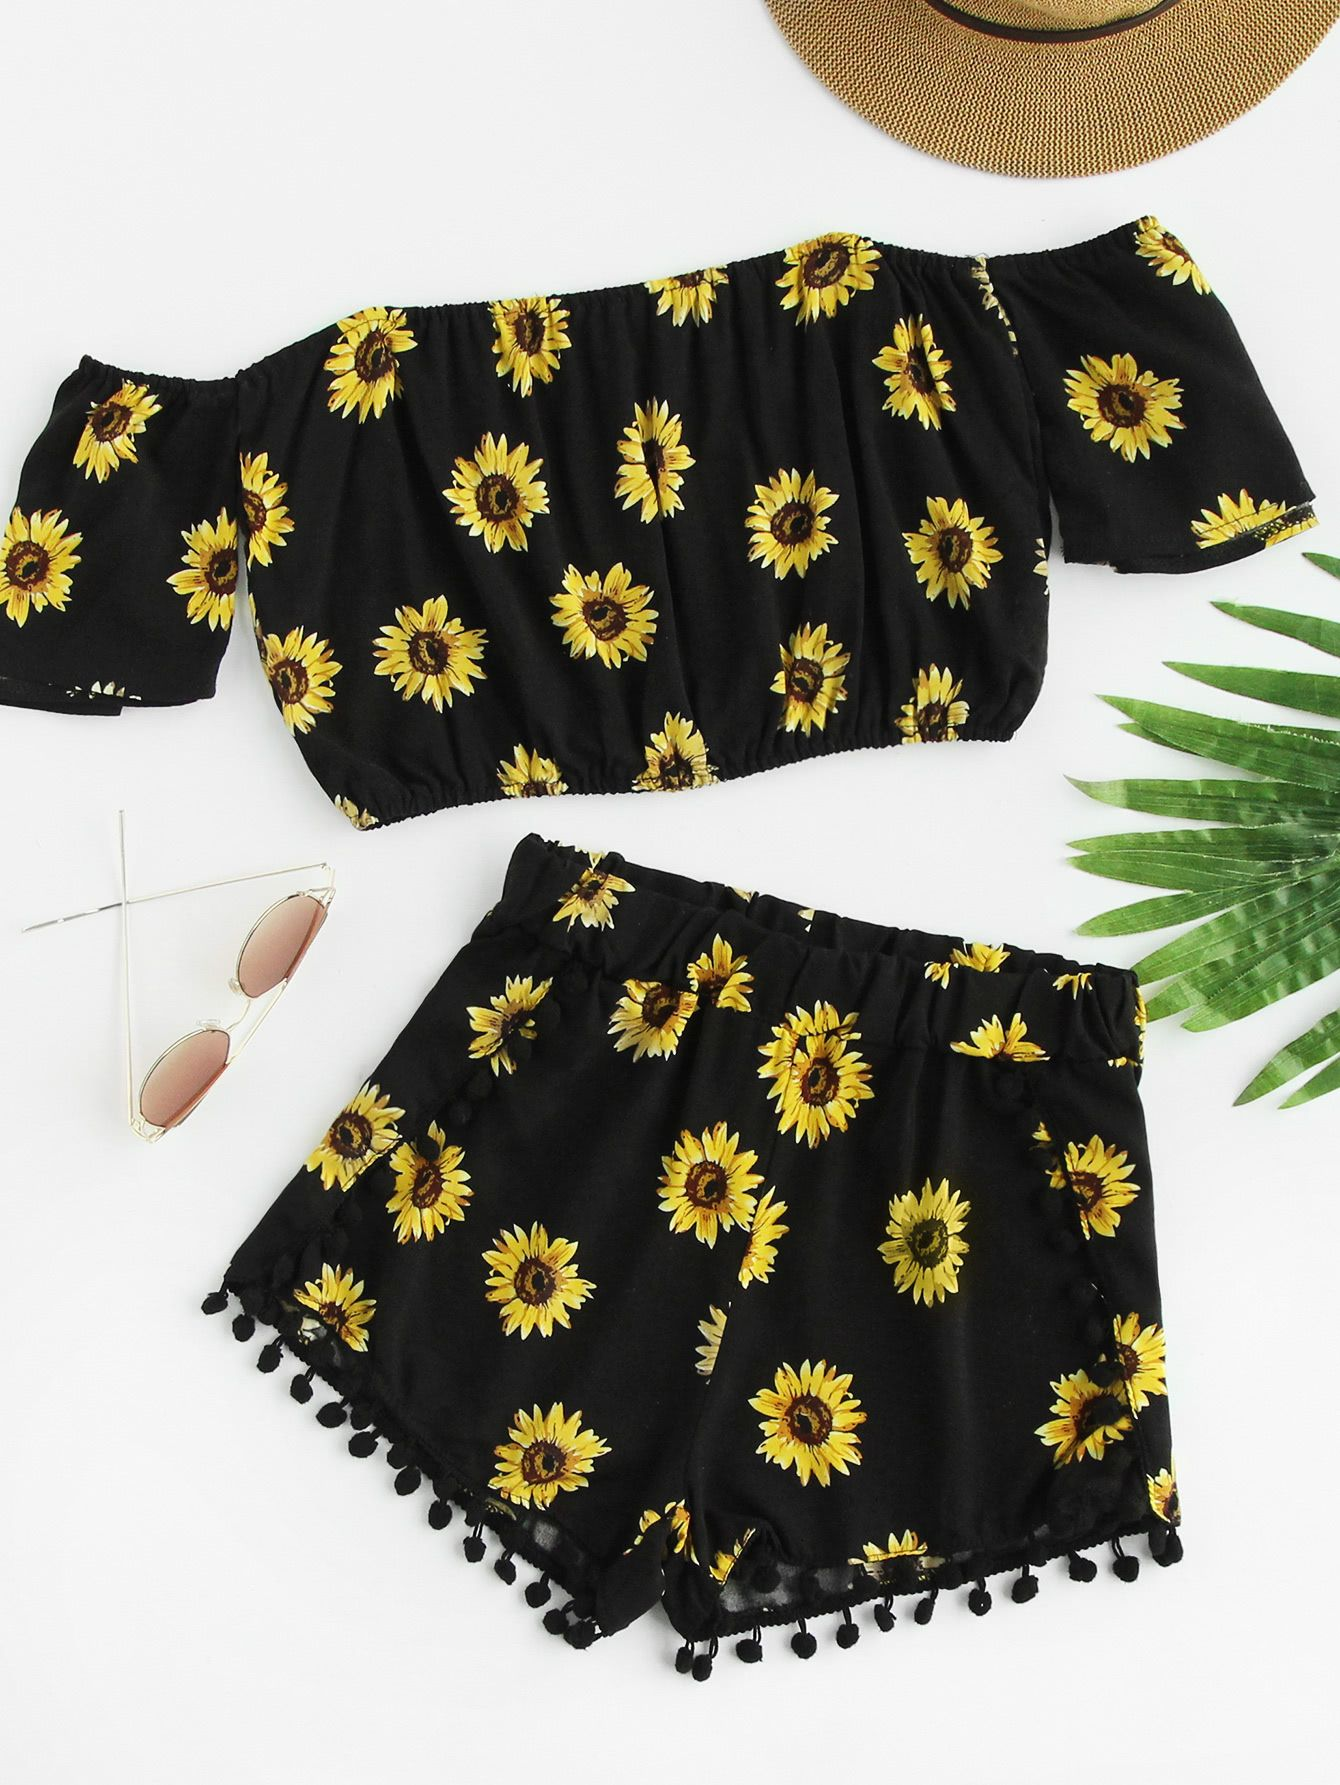 e9b64035515 Shop Bardot Sunflower Print Crop Top With Pom Pom Shorts online. SheIn  offers Bardot Sunflower Print Crop Top With Pom Pom Shorts   more to fit  your ...